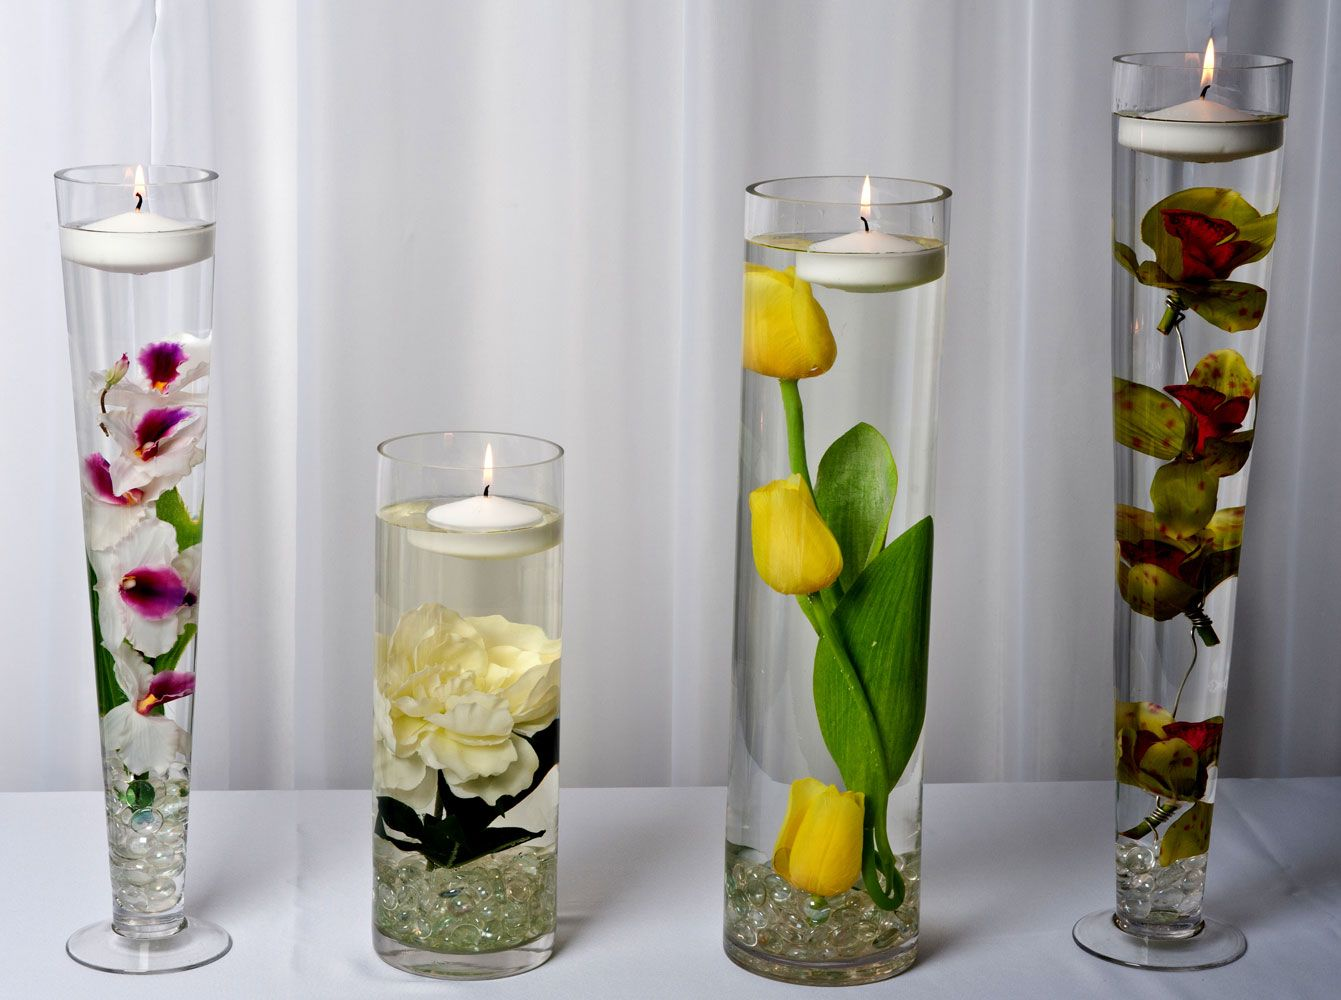 Floral Submerged Centerpieces | Flower Arrangements & Houseplants ...